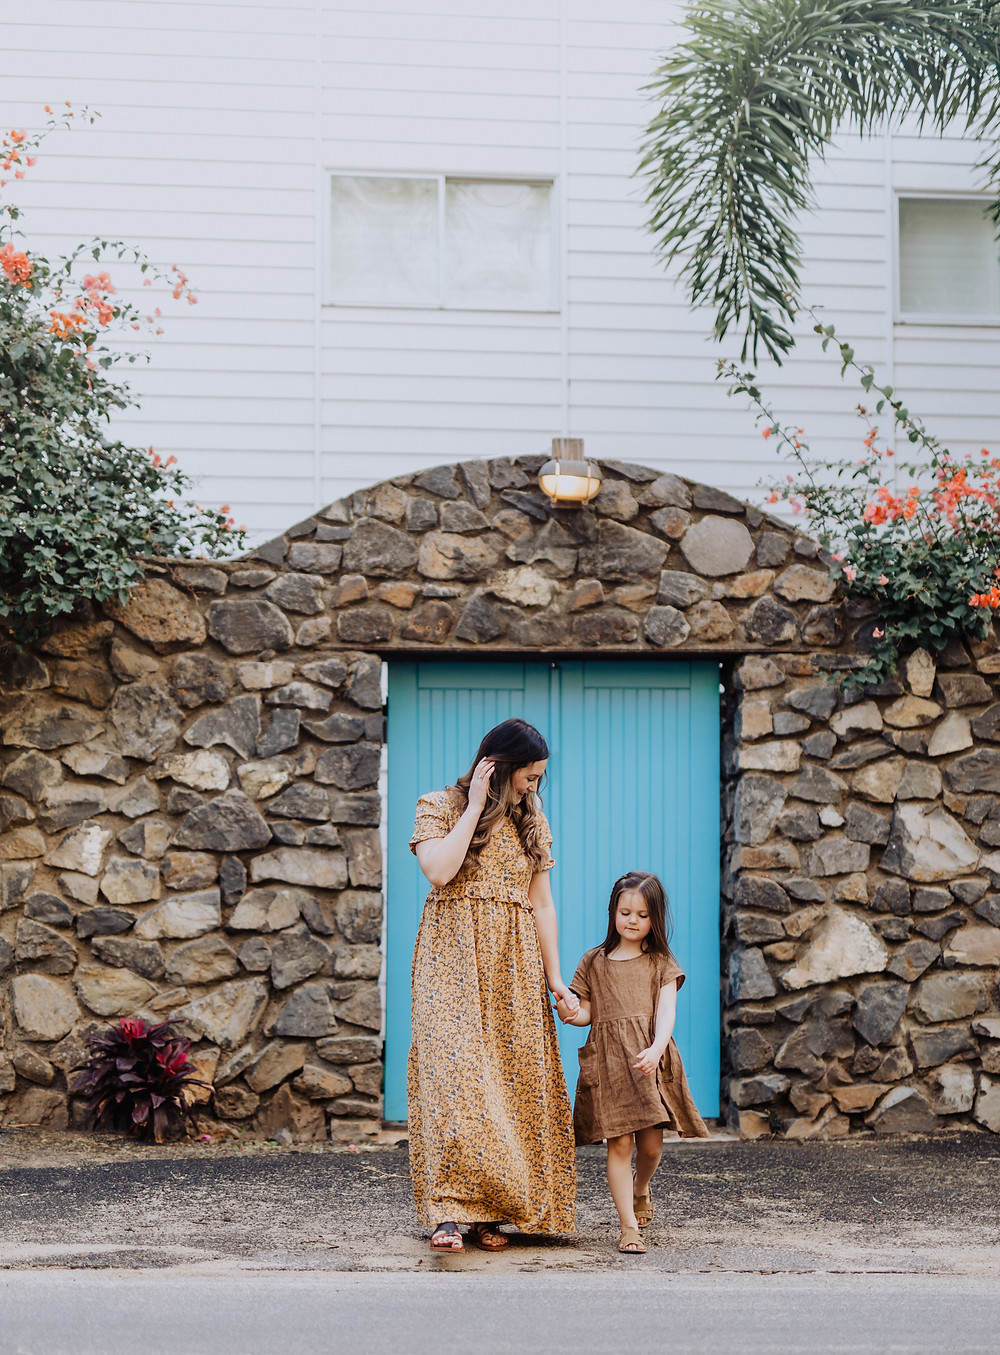 MOTHER AND DAUGHTER WALKING IN FRONT OF A BLUE DOOR